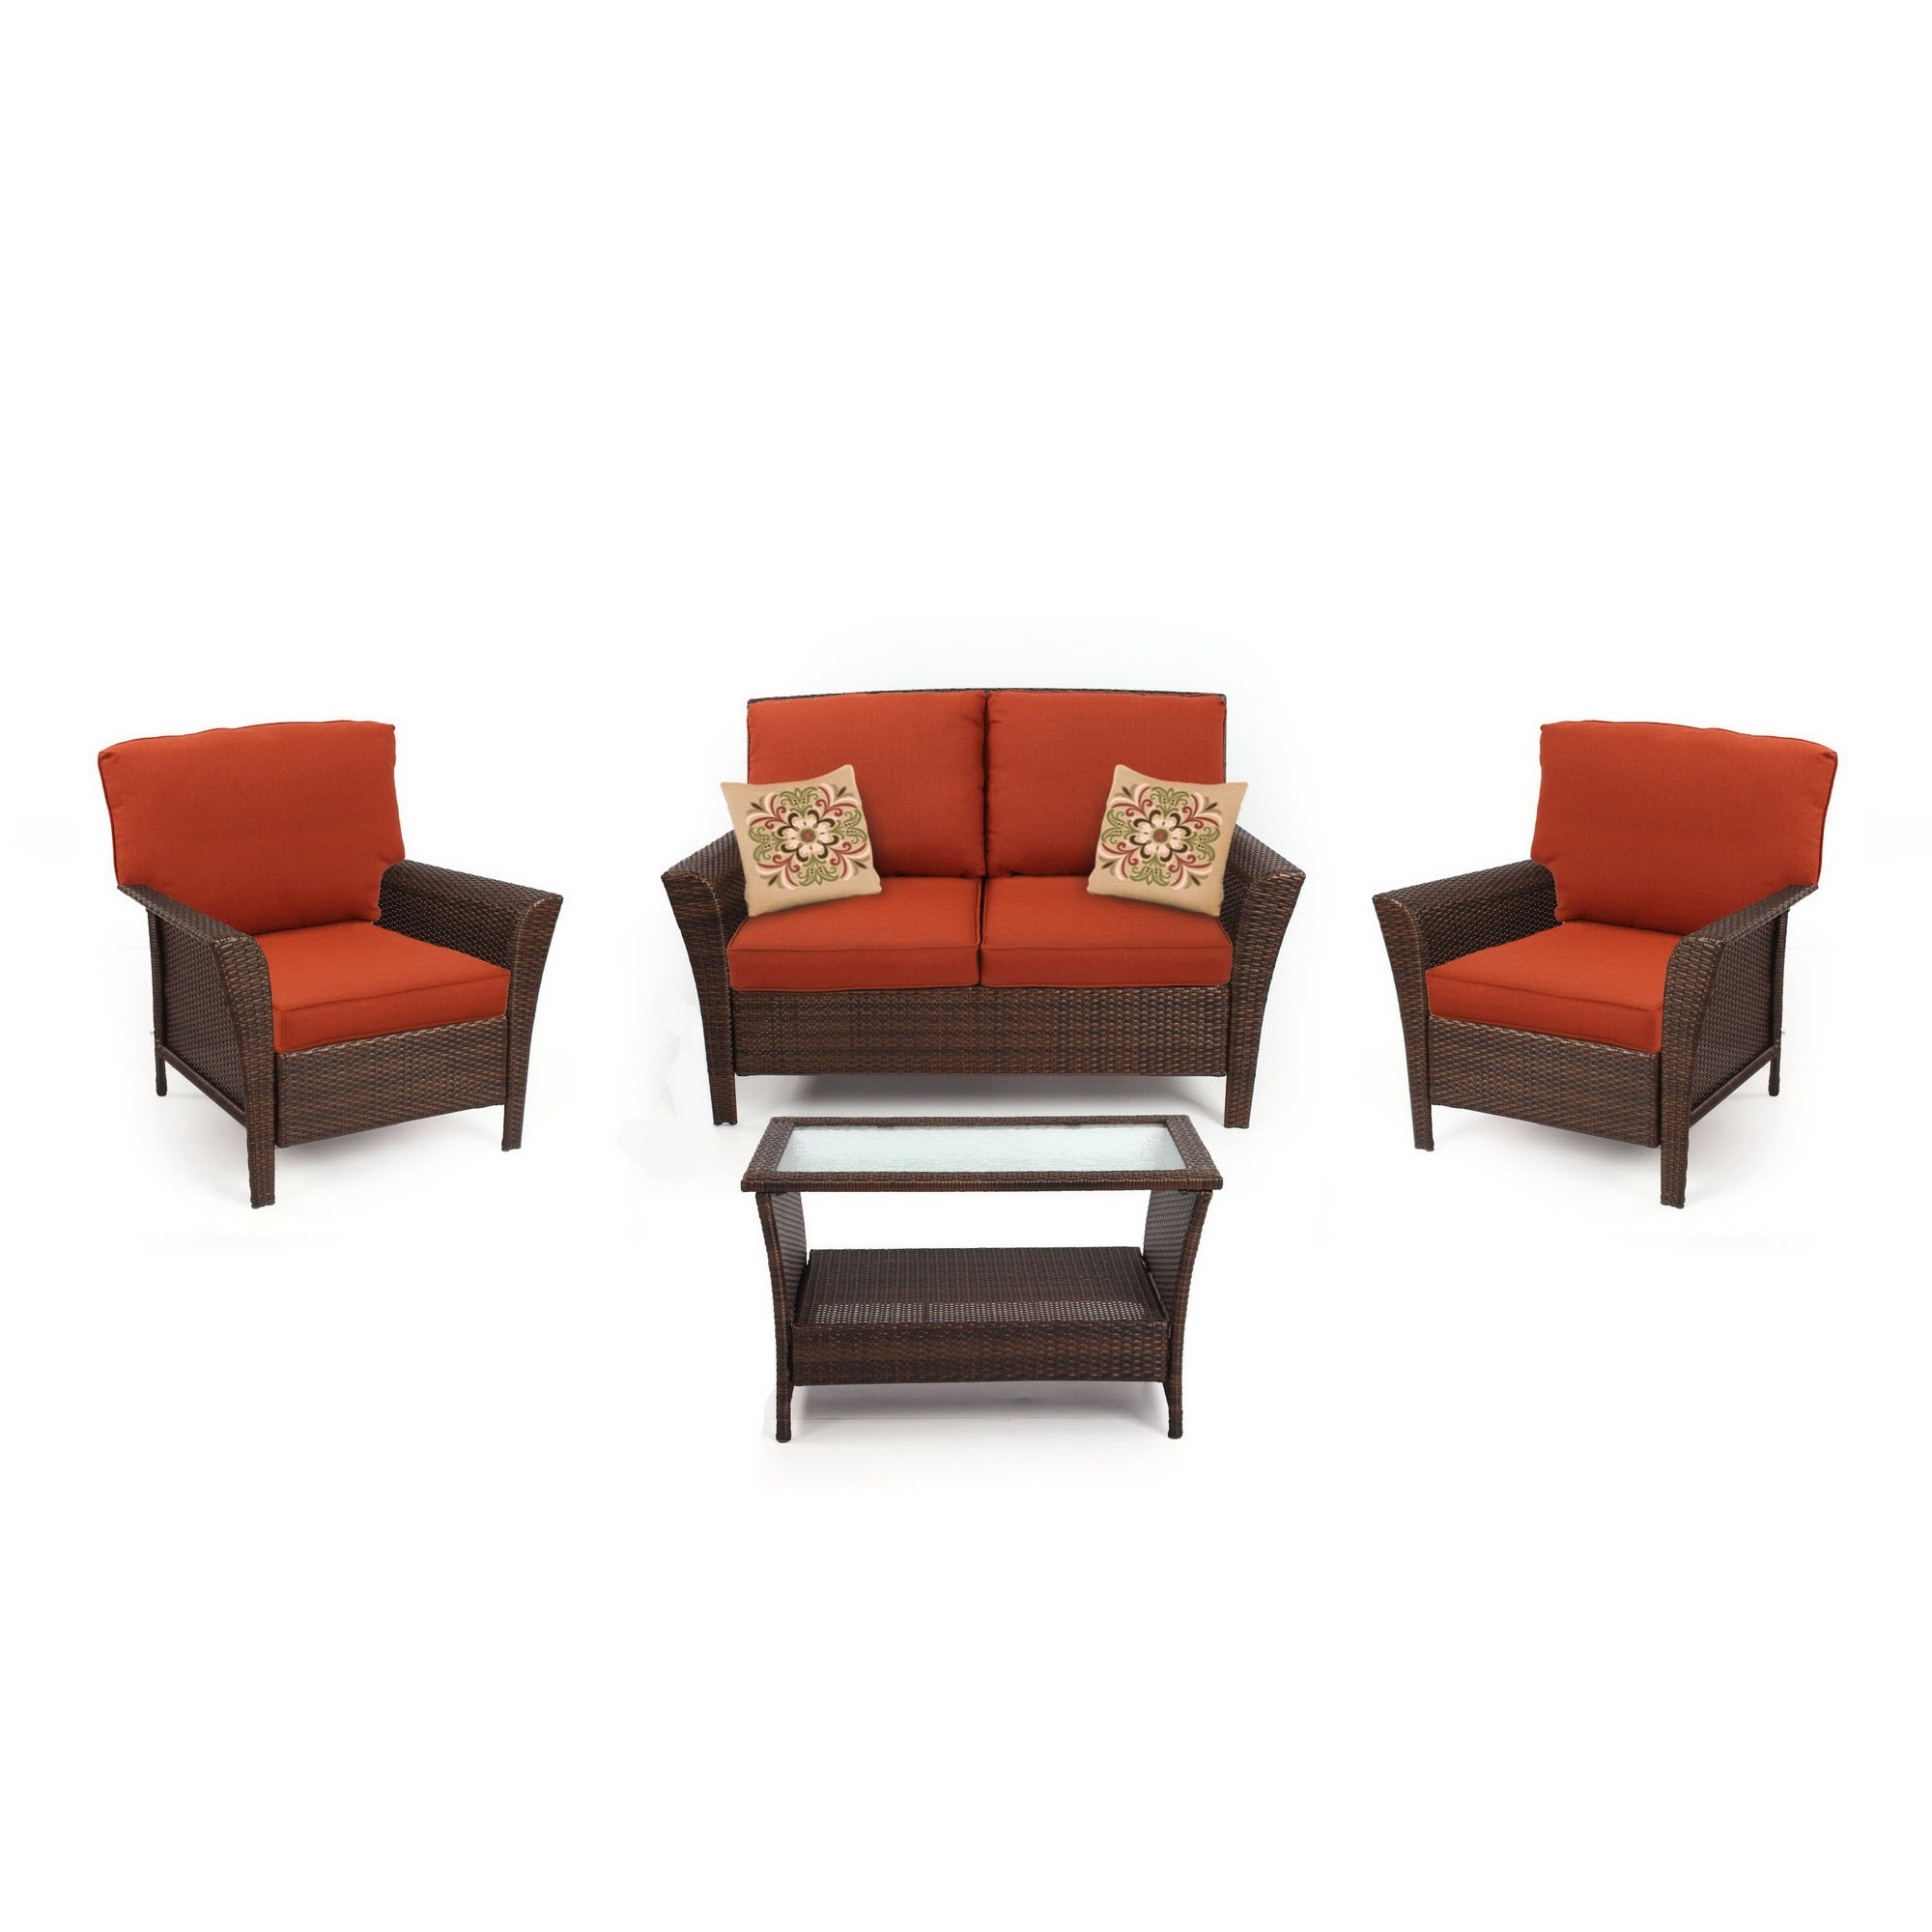 Charlotte Piece Seating Set Red Sears Outdoor Dining Living Coupon With Well Known Patio Conversation Sets At Sears (View 2 of 20)